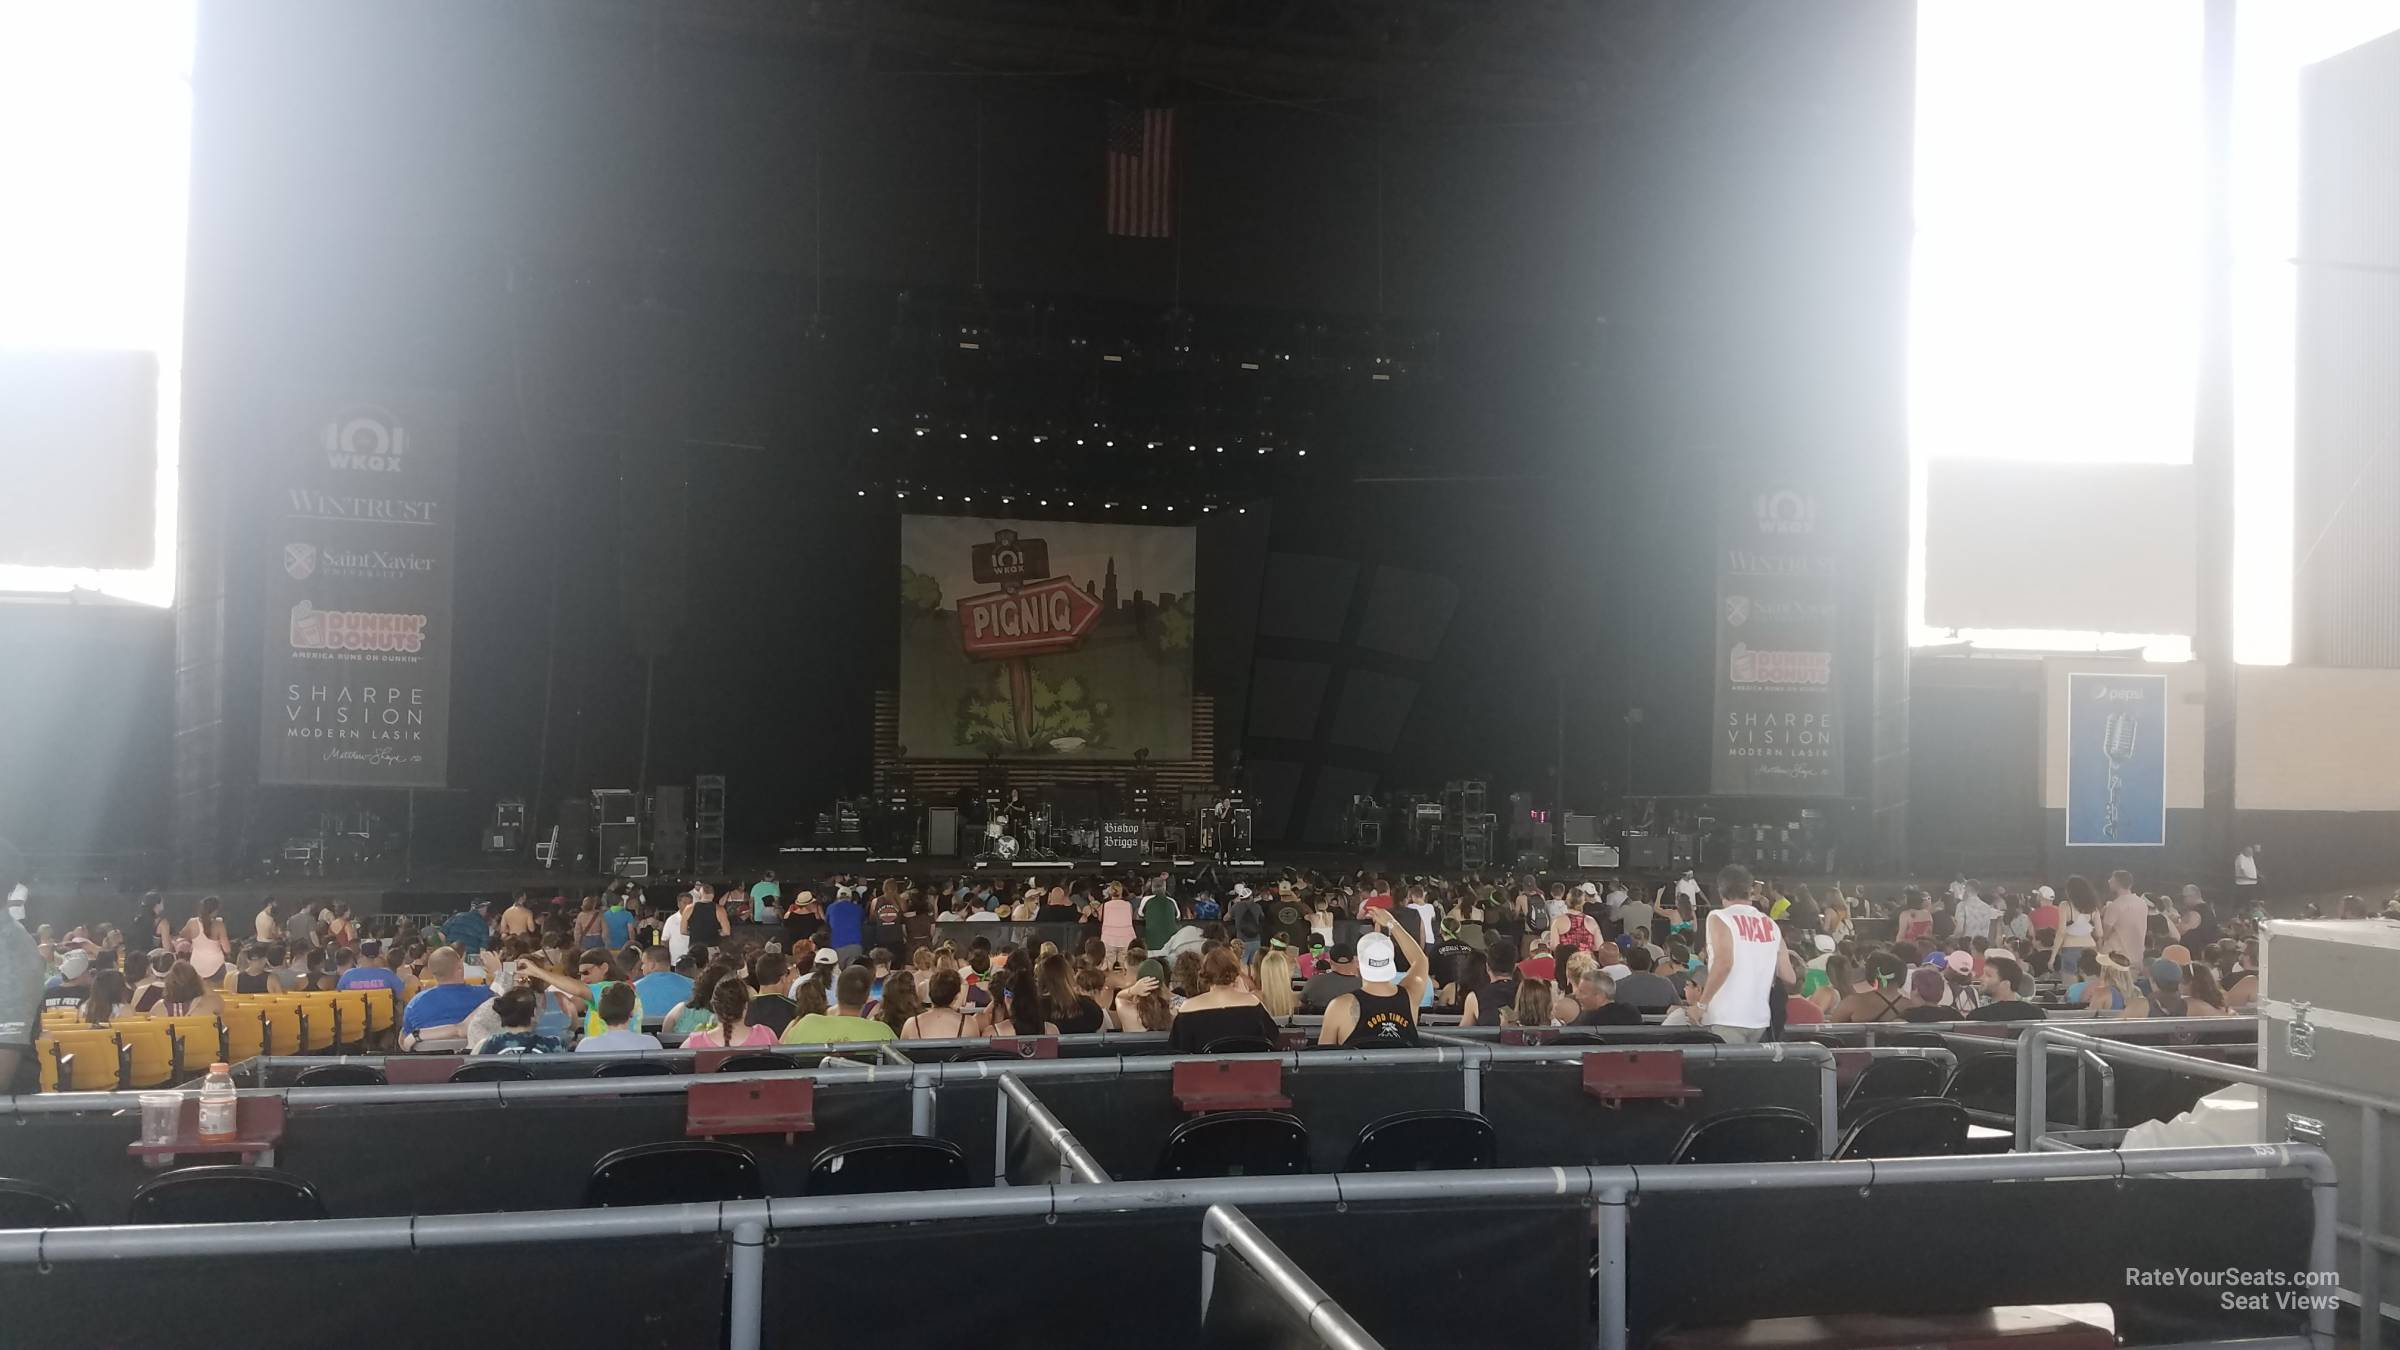 Concert Seat View for Hollywood Casino Amphitheatre VIP Box Seats